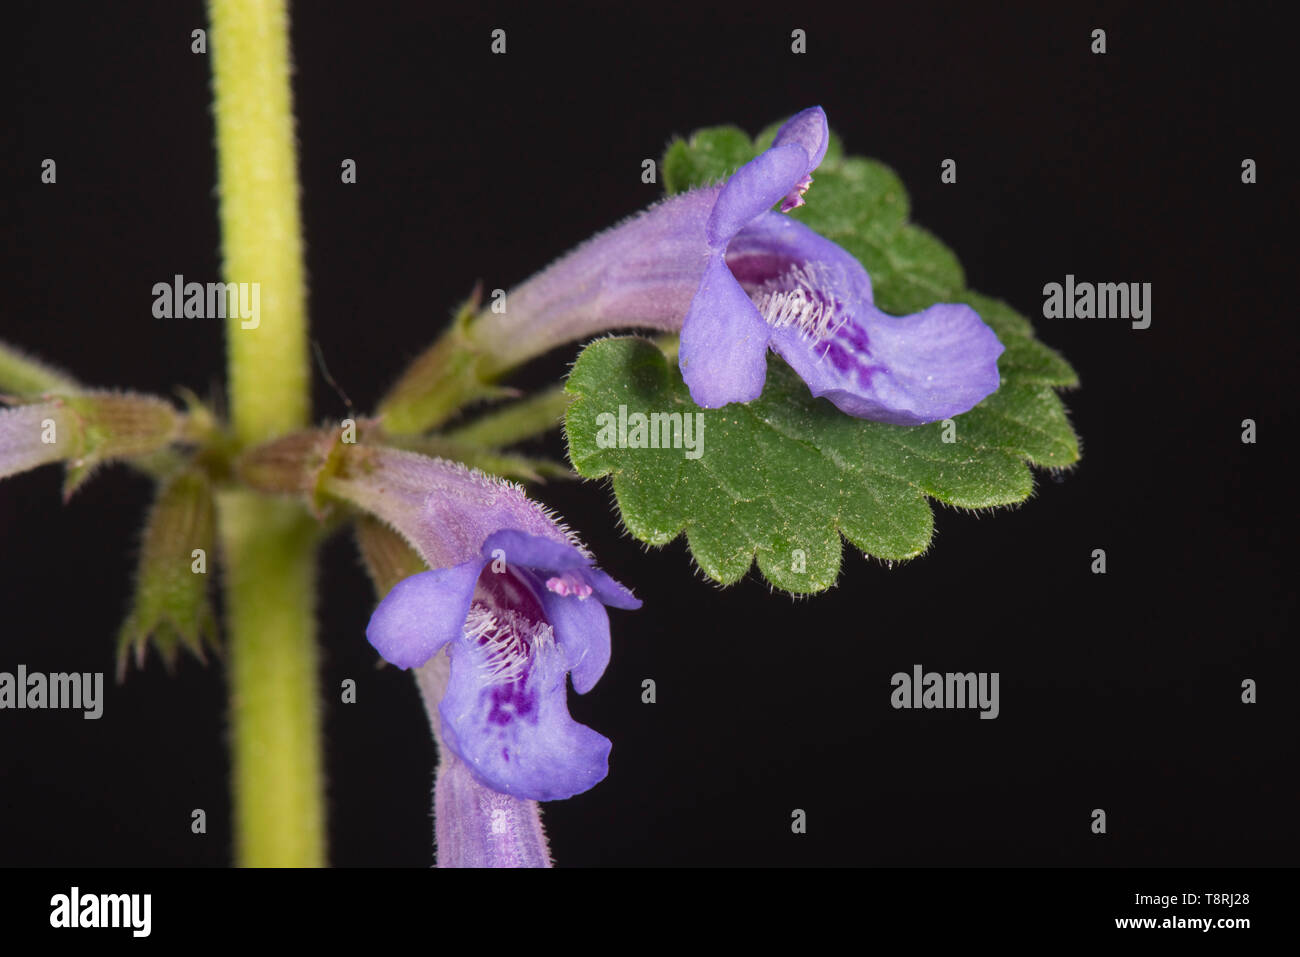 Ground-ivy (Glechoma hederacea) blue flowers on prostrate evergreen creeper against black background, Berkshire, April - Stock Image